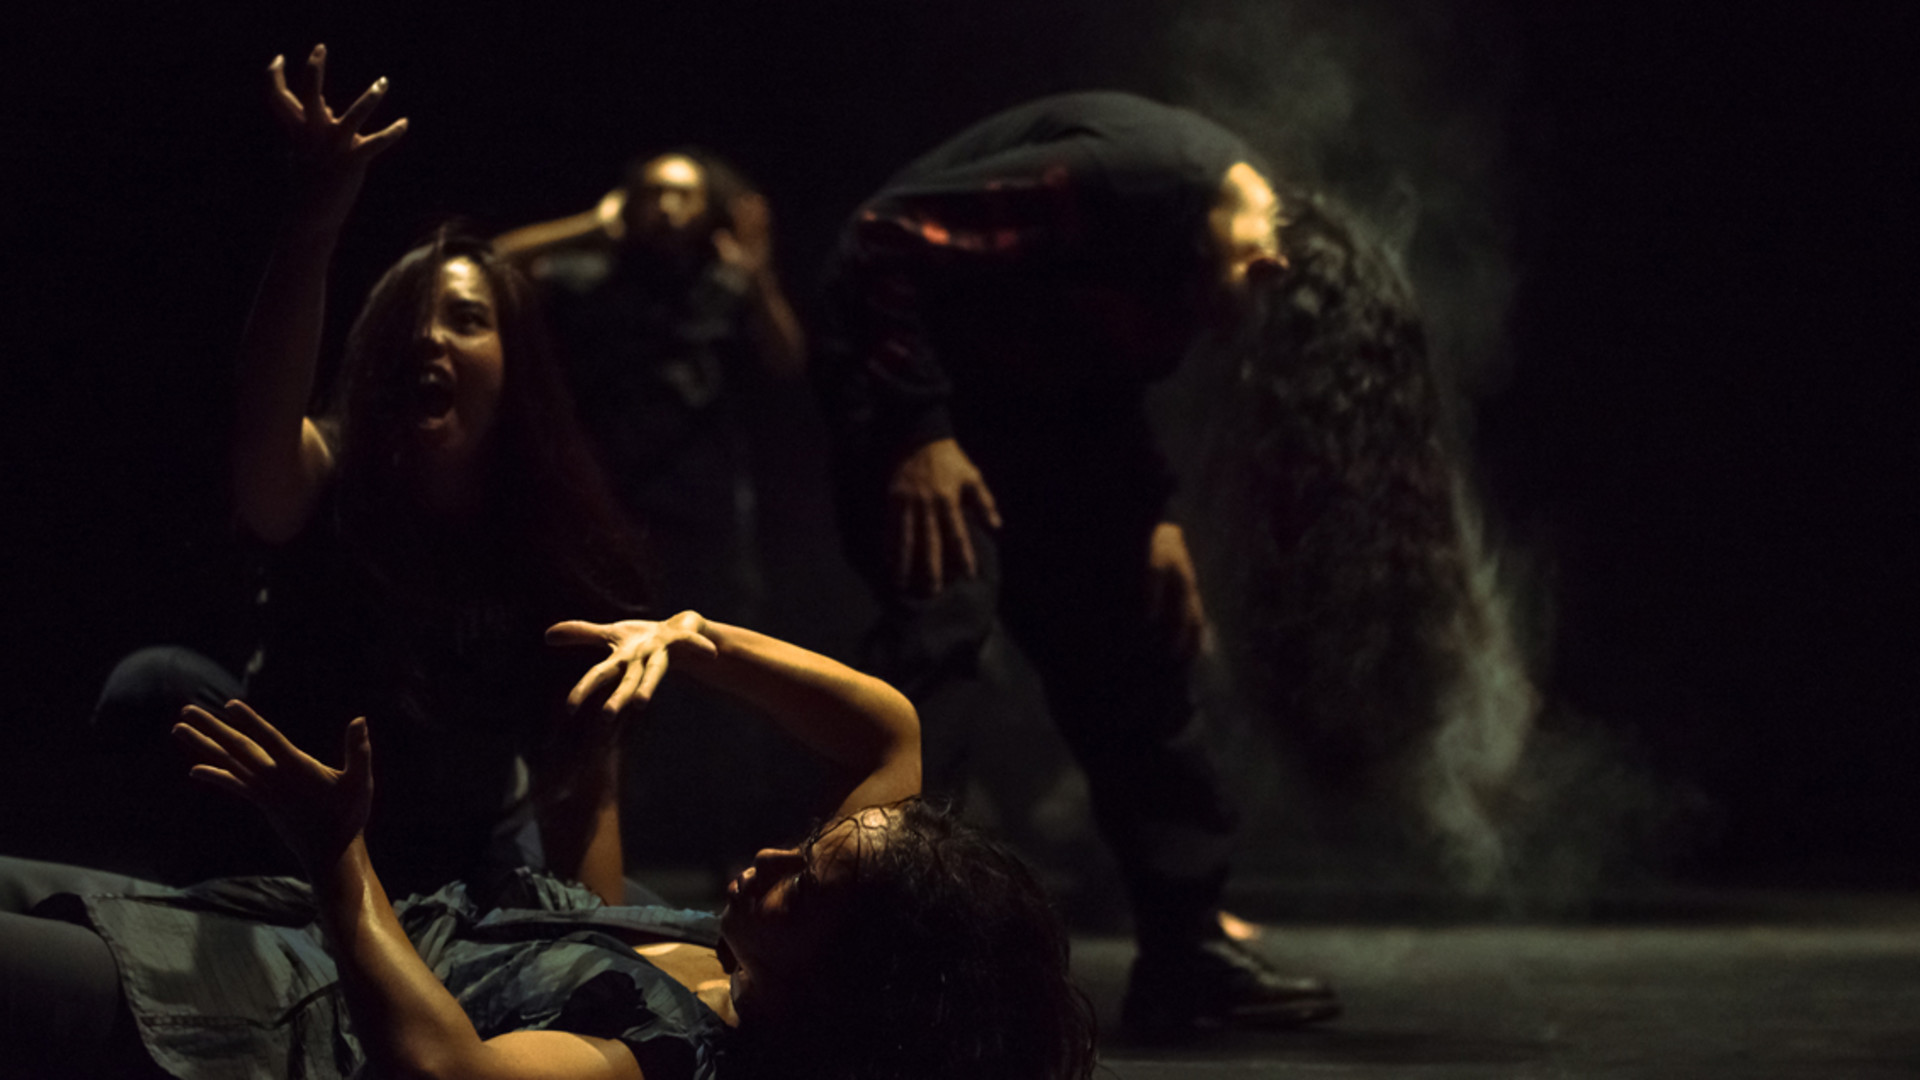 A dancer lies on the ground, arms lifted while one singer hovers over her. Another singer is bent over in the background, with his head down. Smoke billows from his long hair.